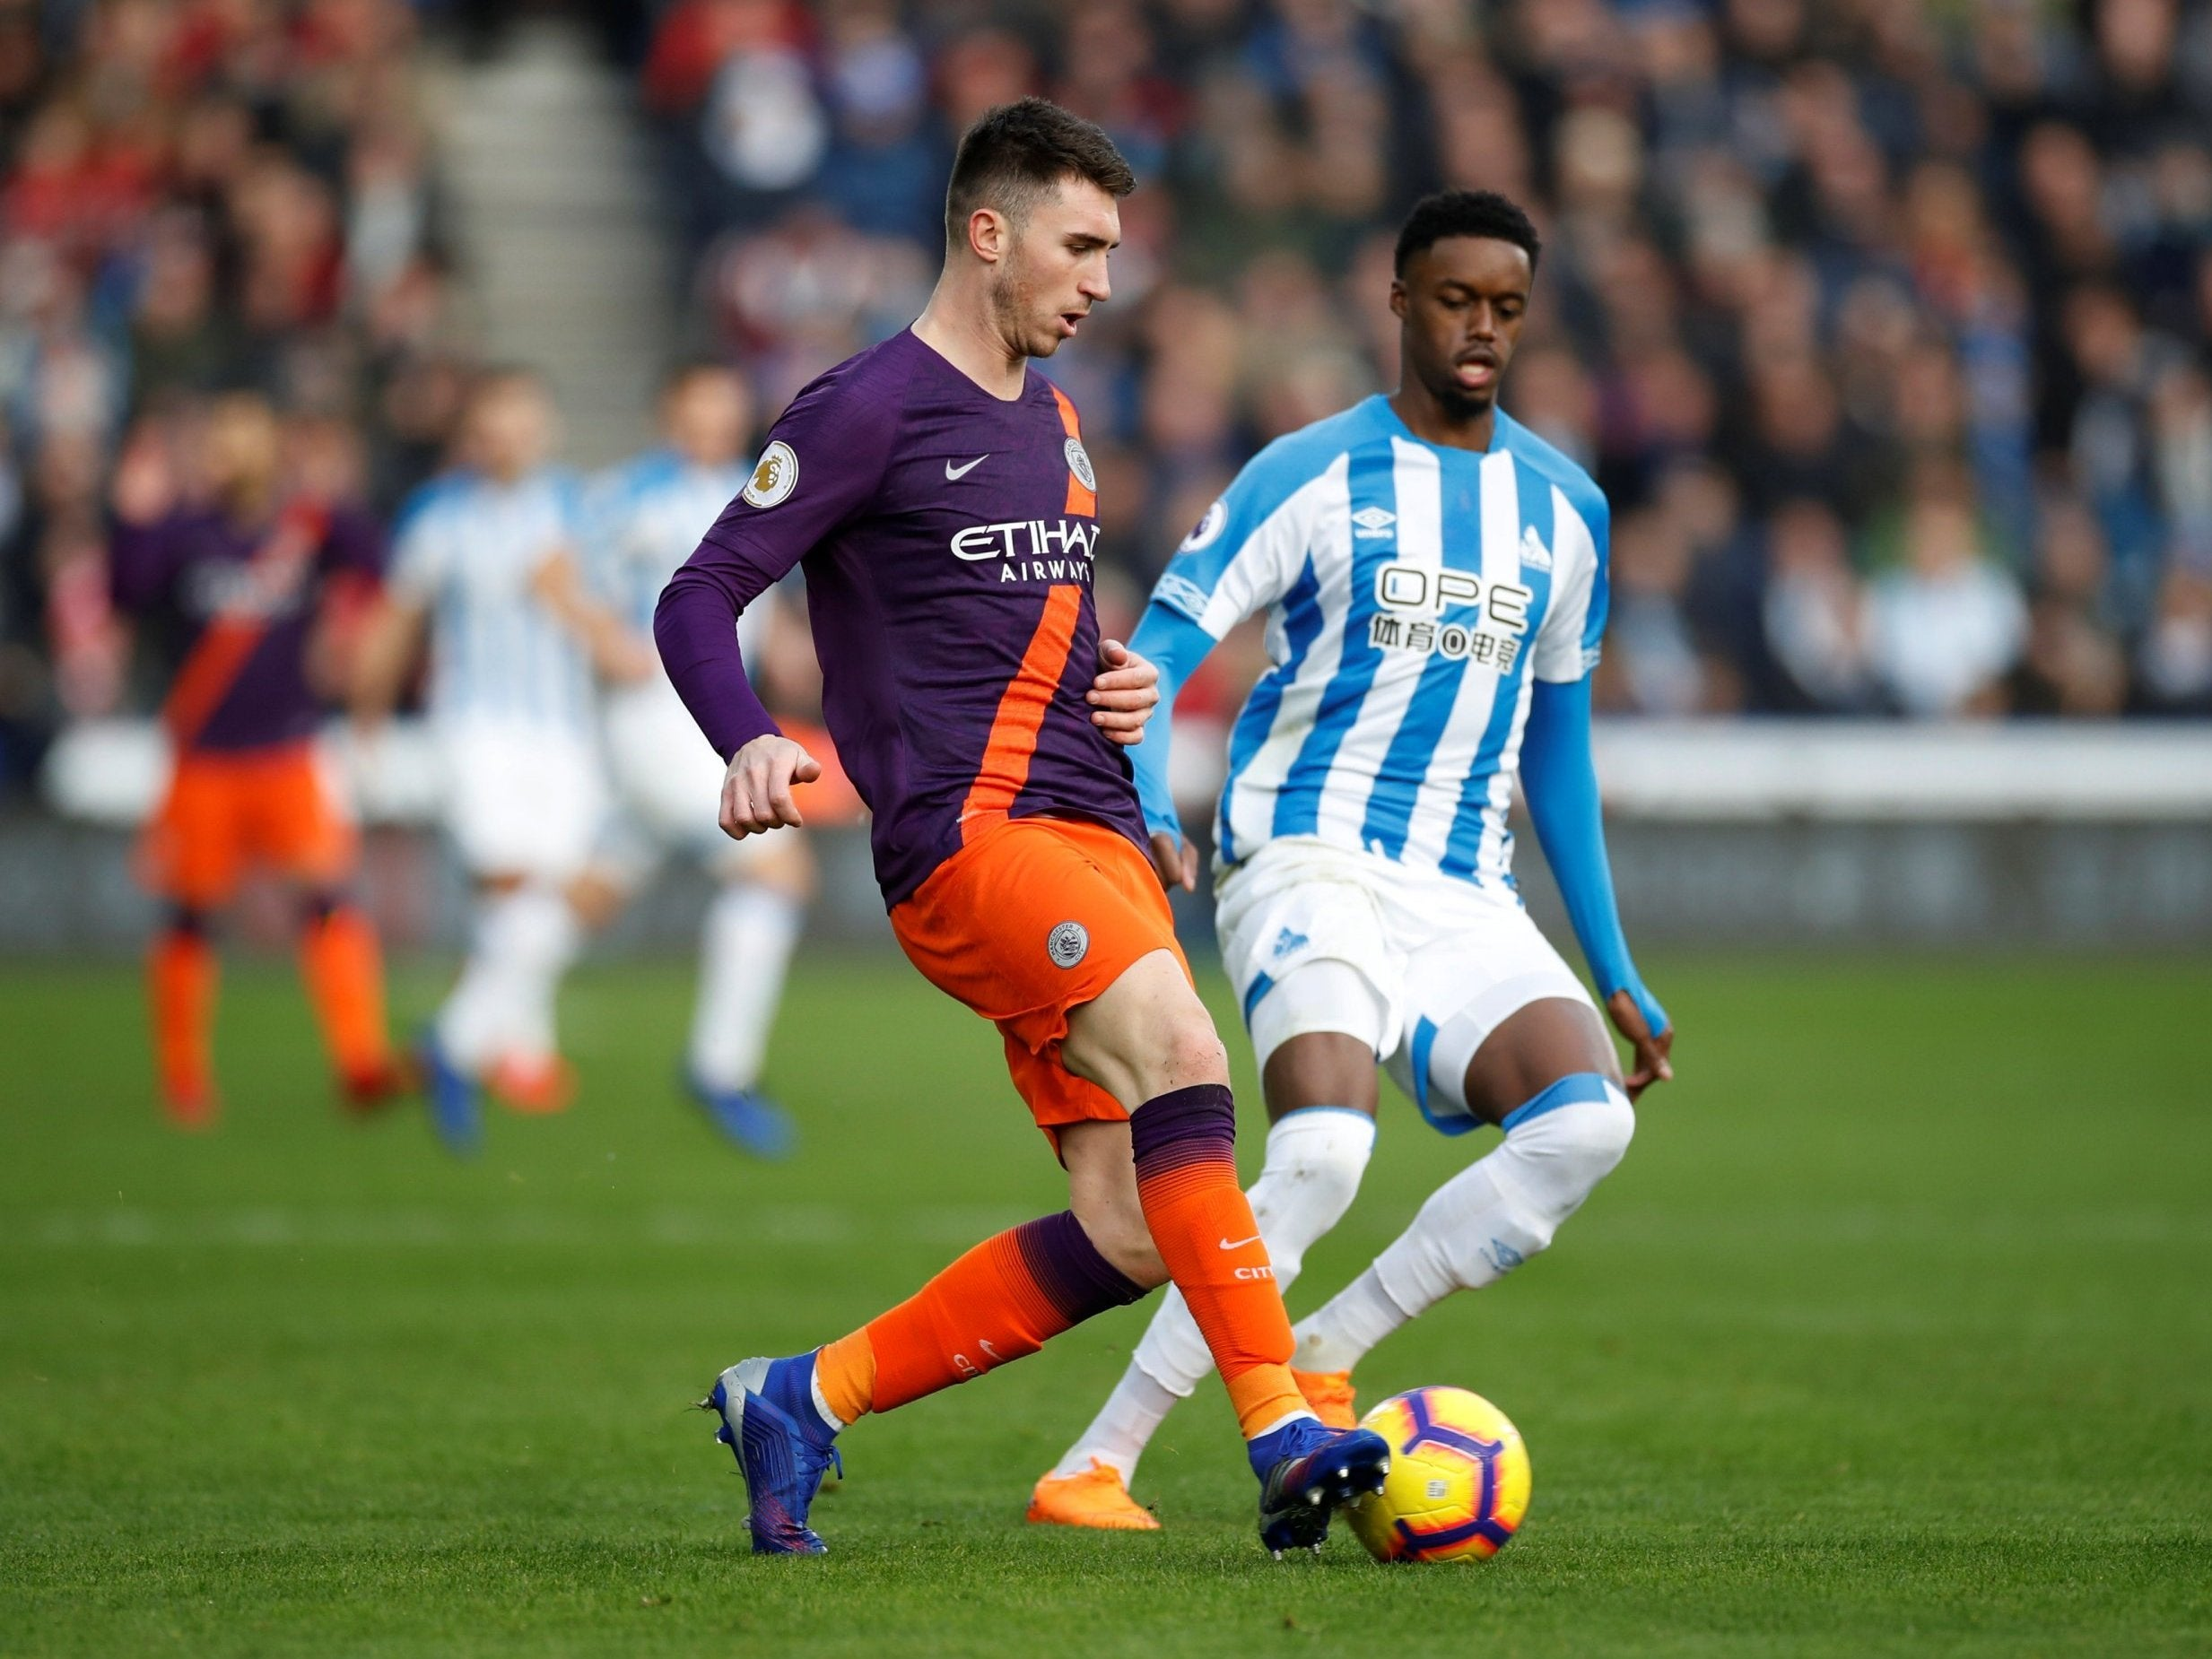 Huddersfield Town vs Man City - LIVE: Score, goals and